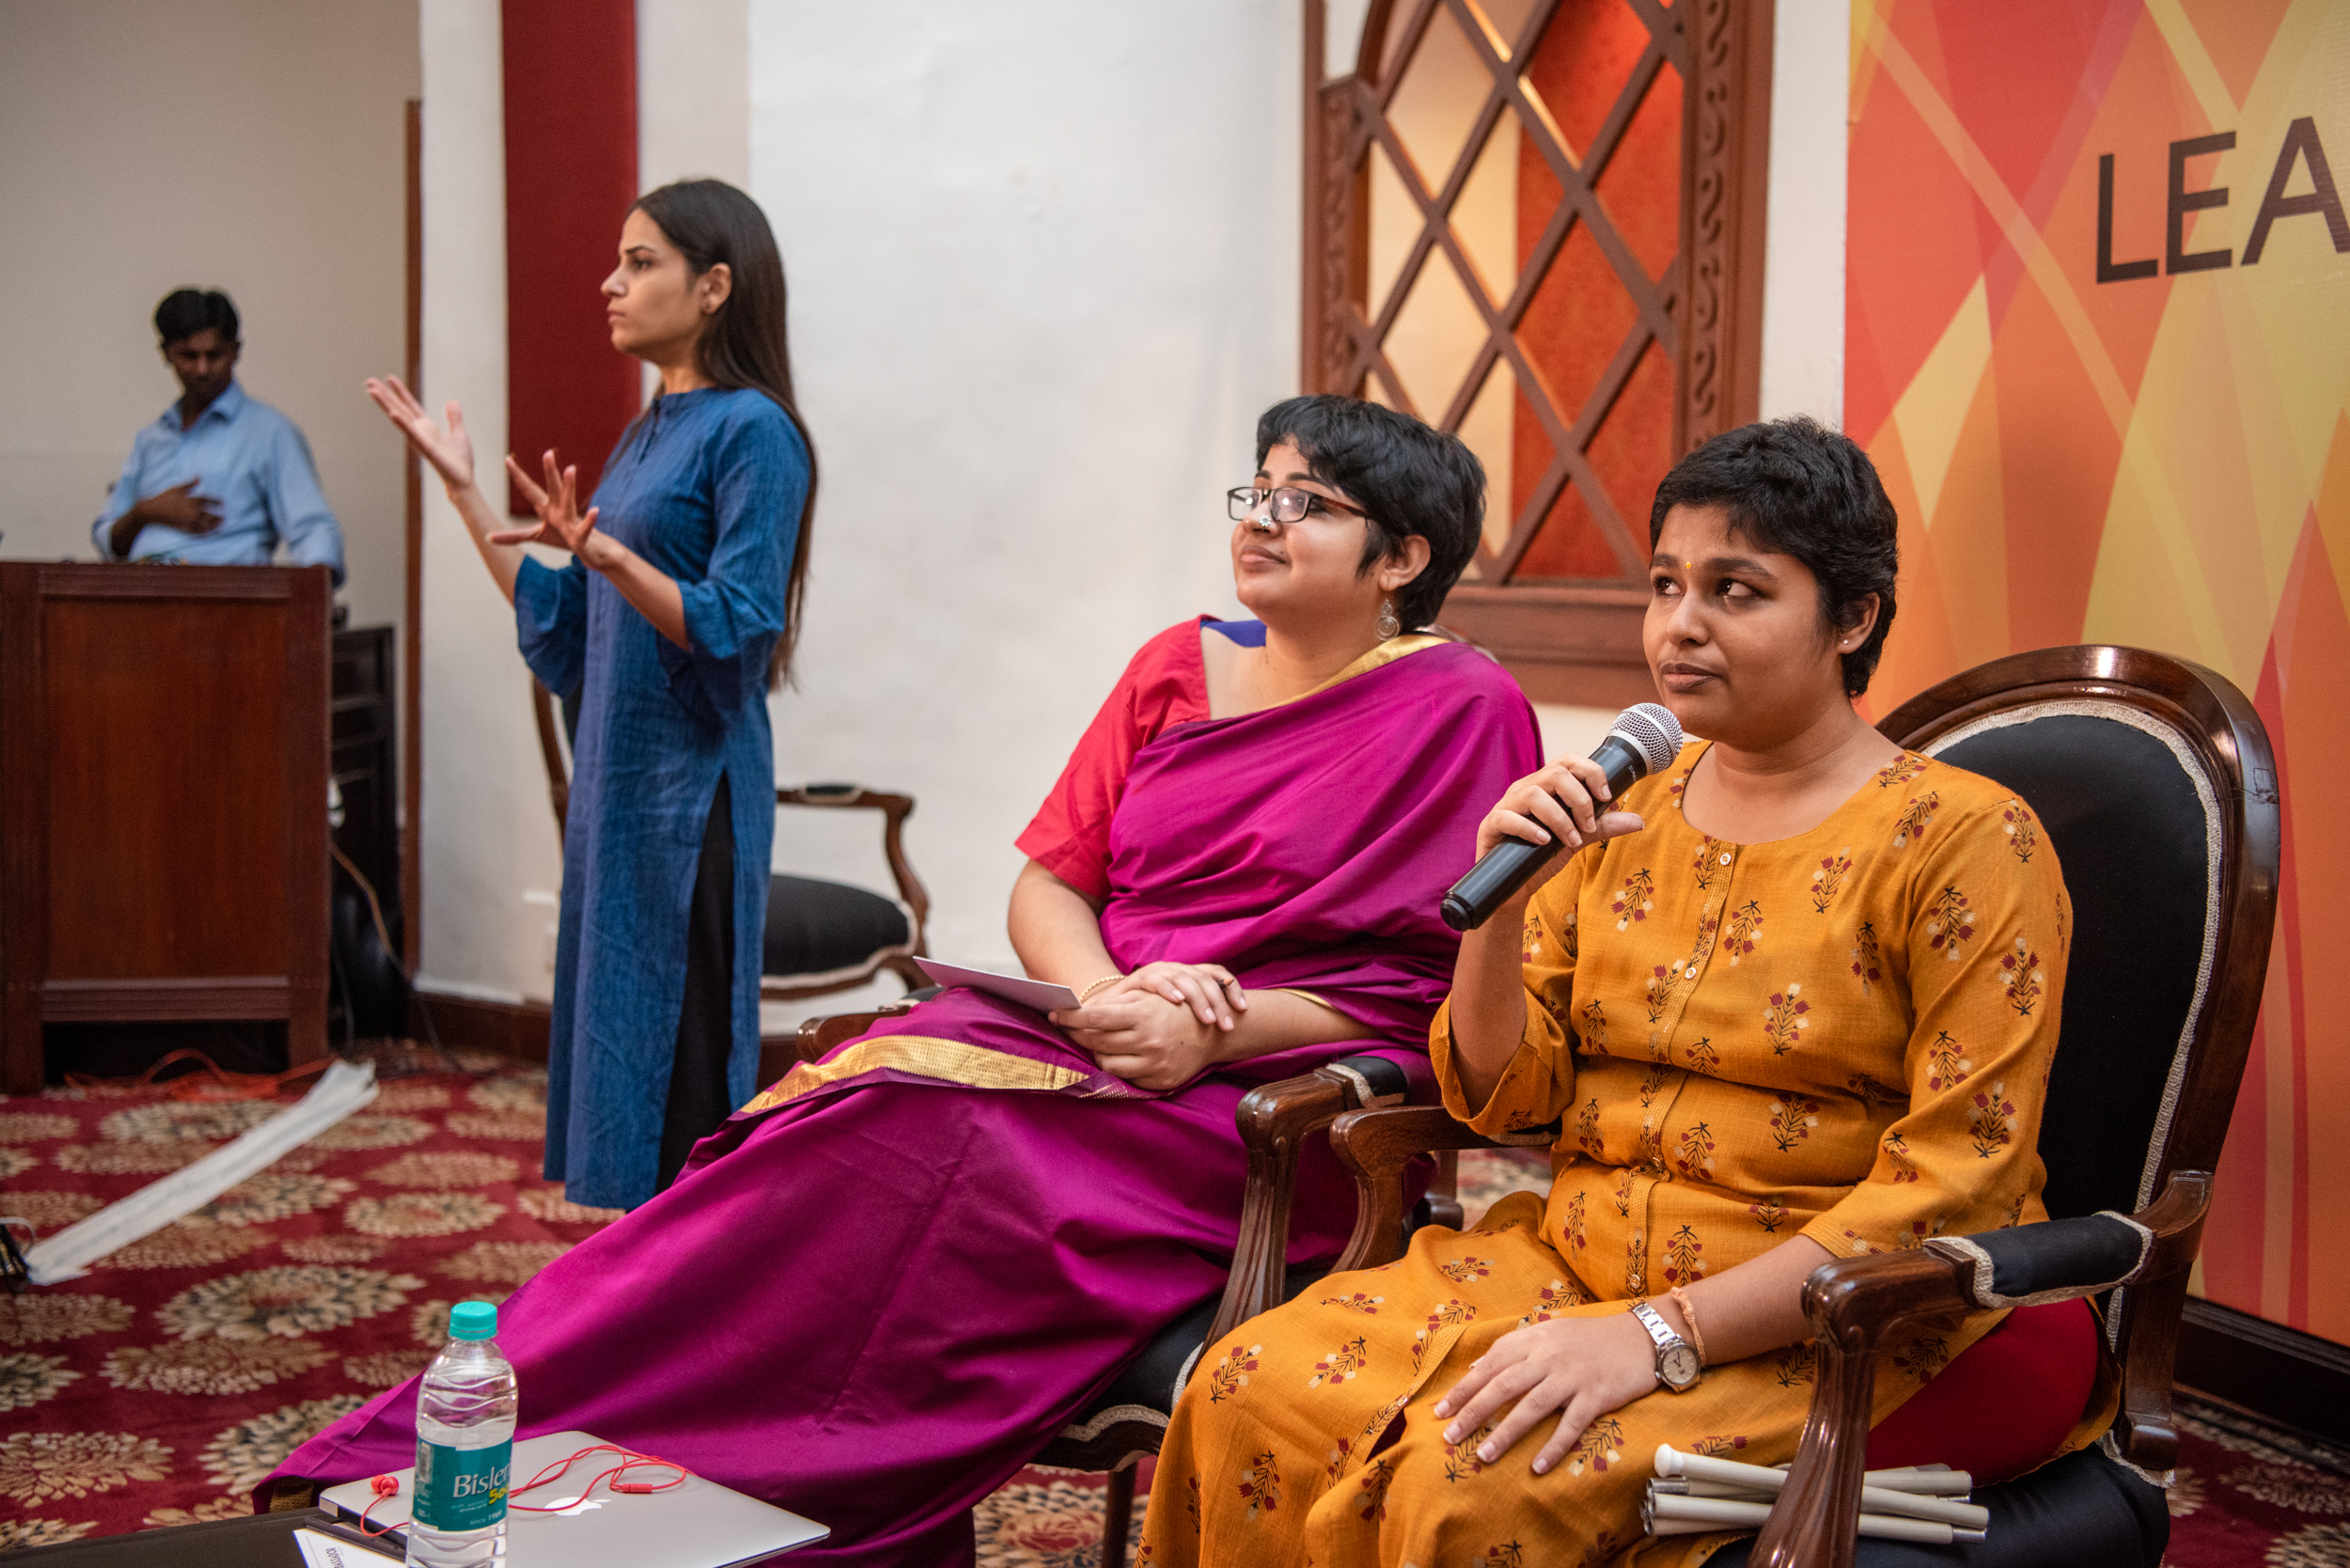 i can lead 2019 fellow Shreelekka sriram speaking in a mic, Srinidhi raghavan sitting beside her and smiling. Sign language interpreter in the background